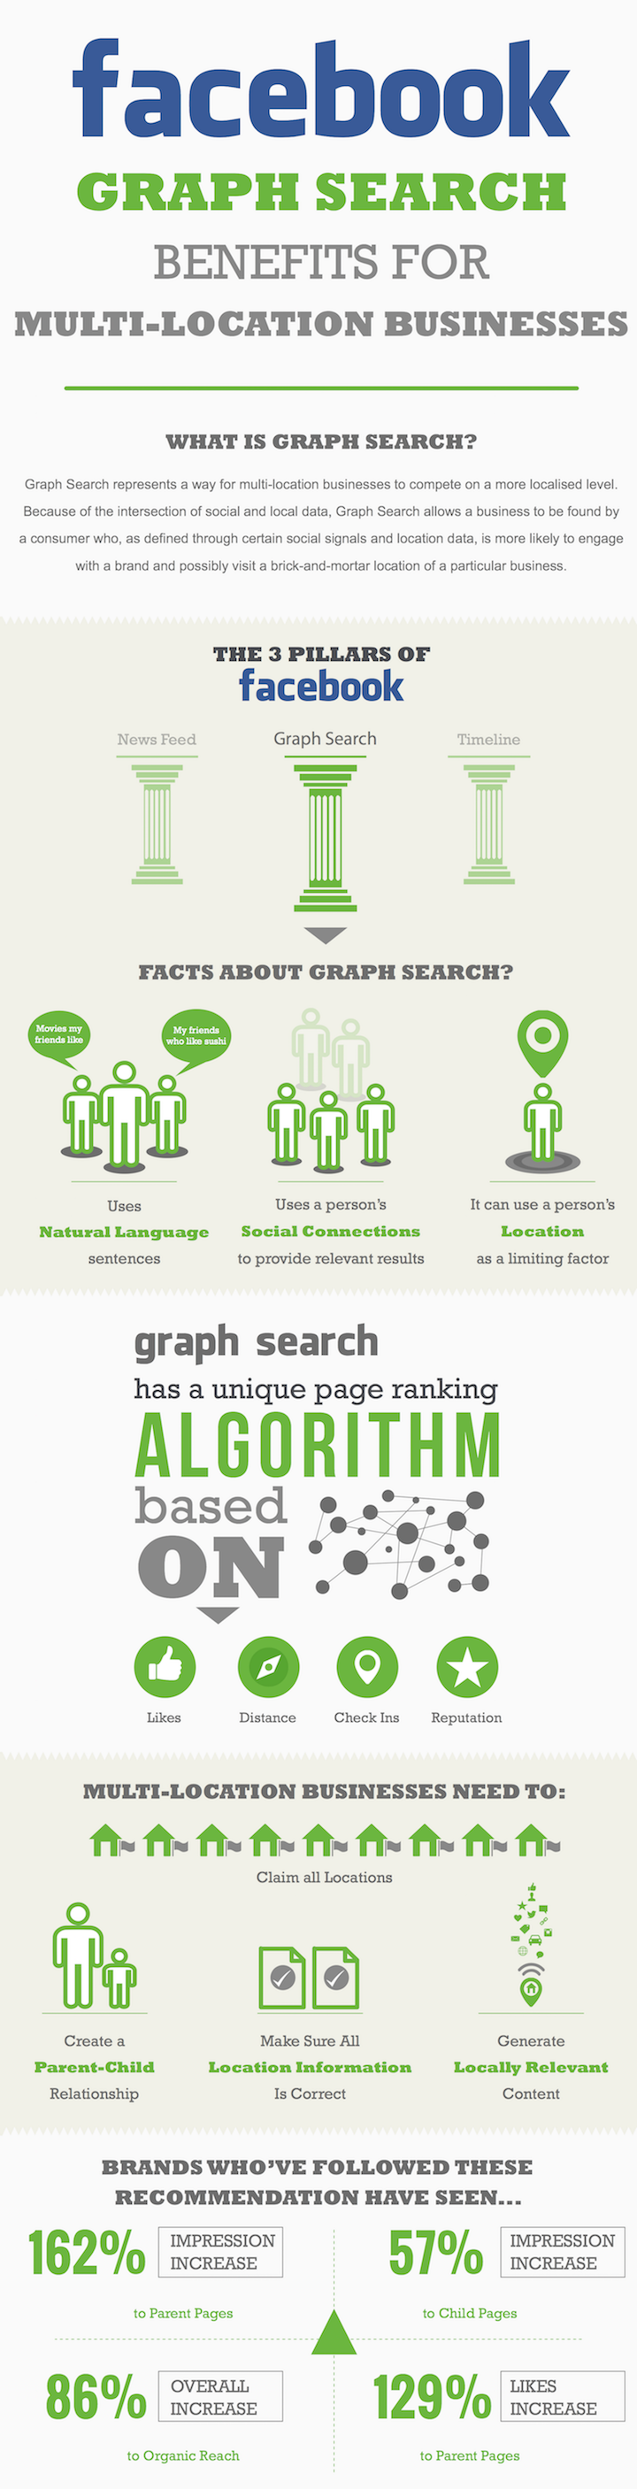 Facebook-Graph-Search-for-MultiLocation-Brands1-scaled